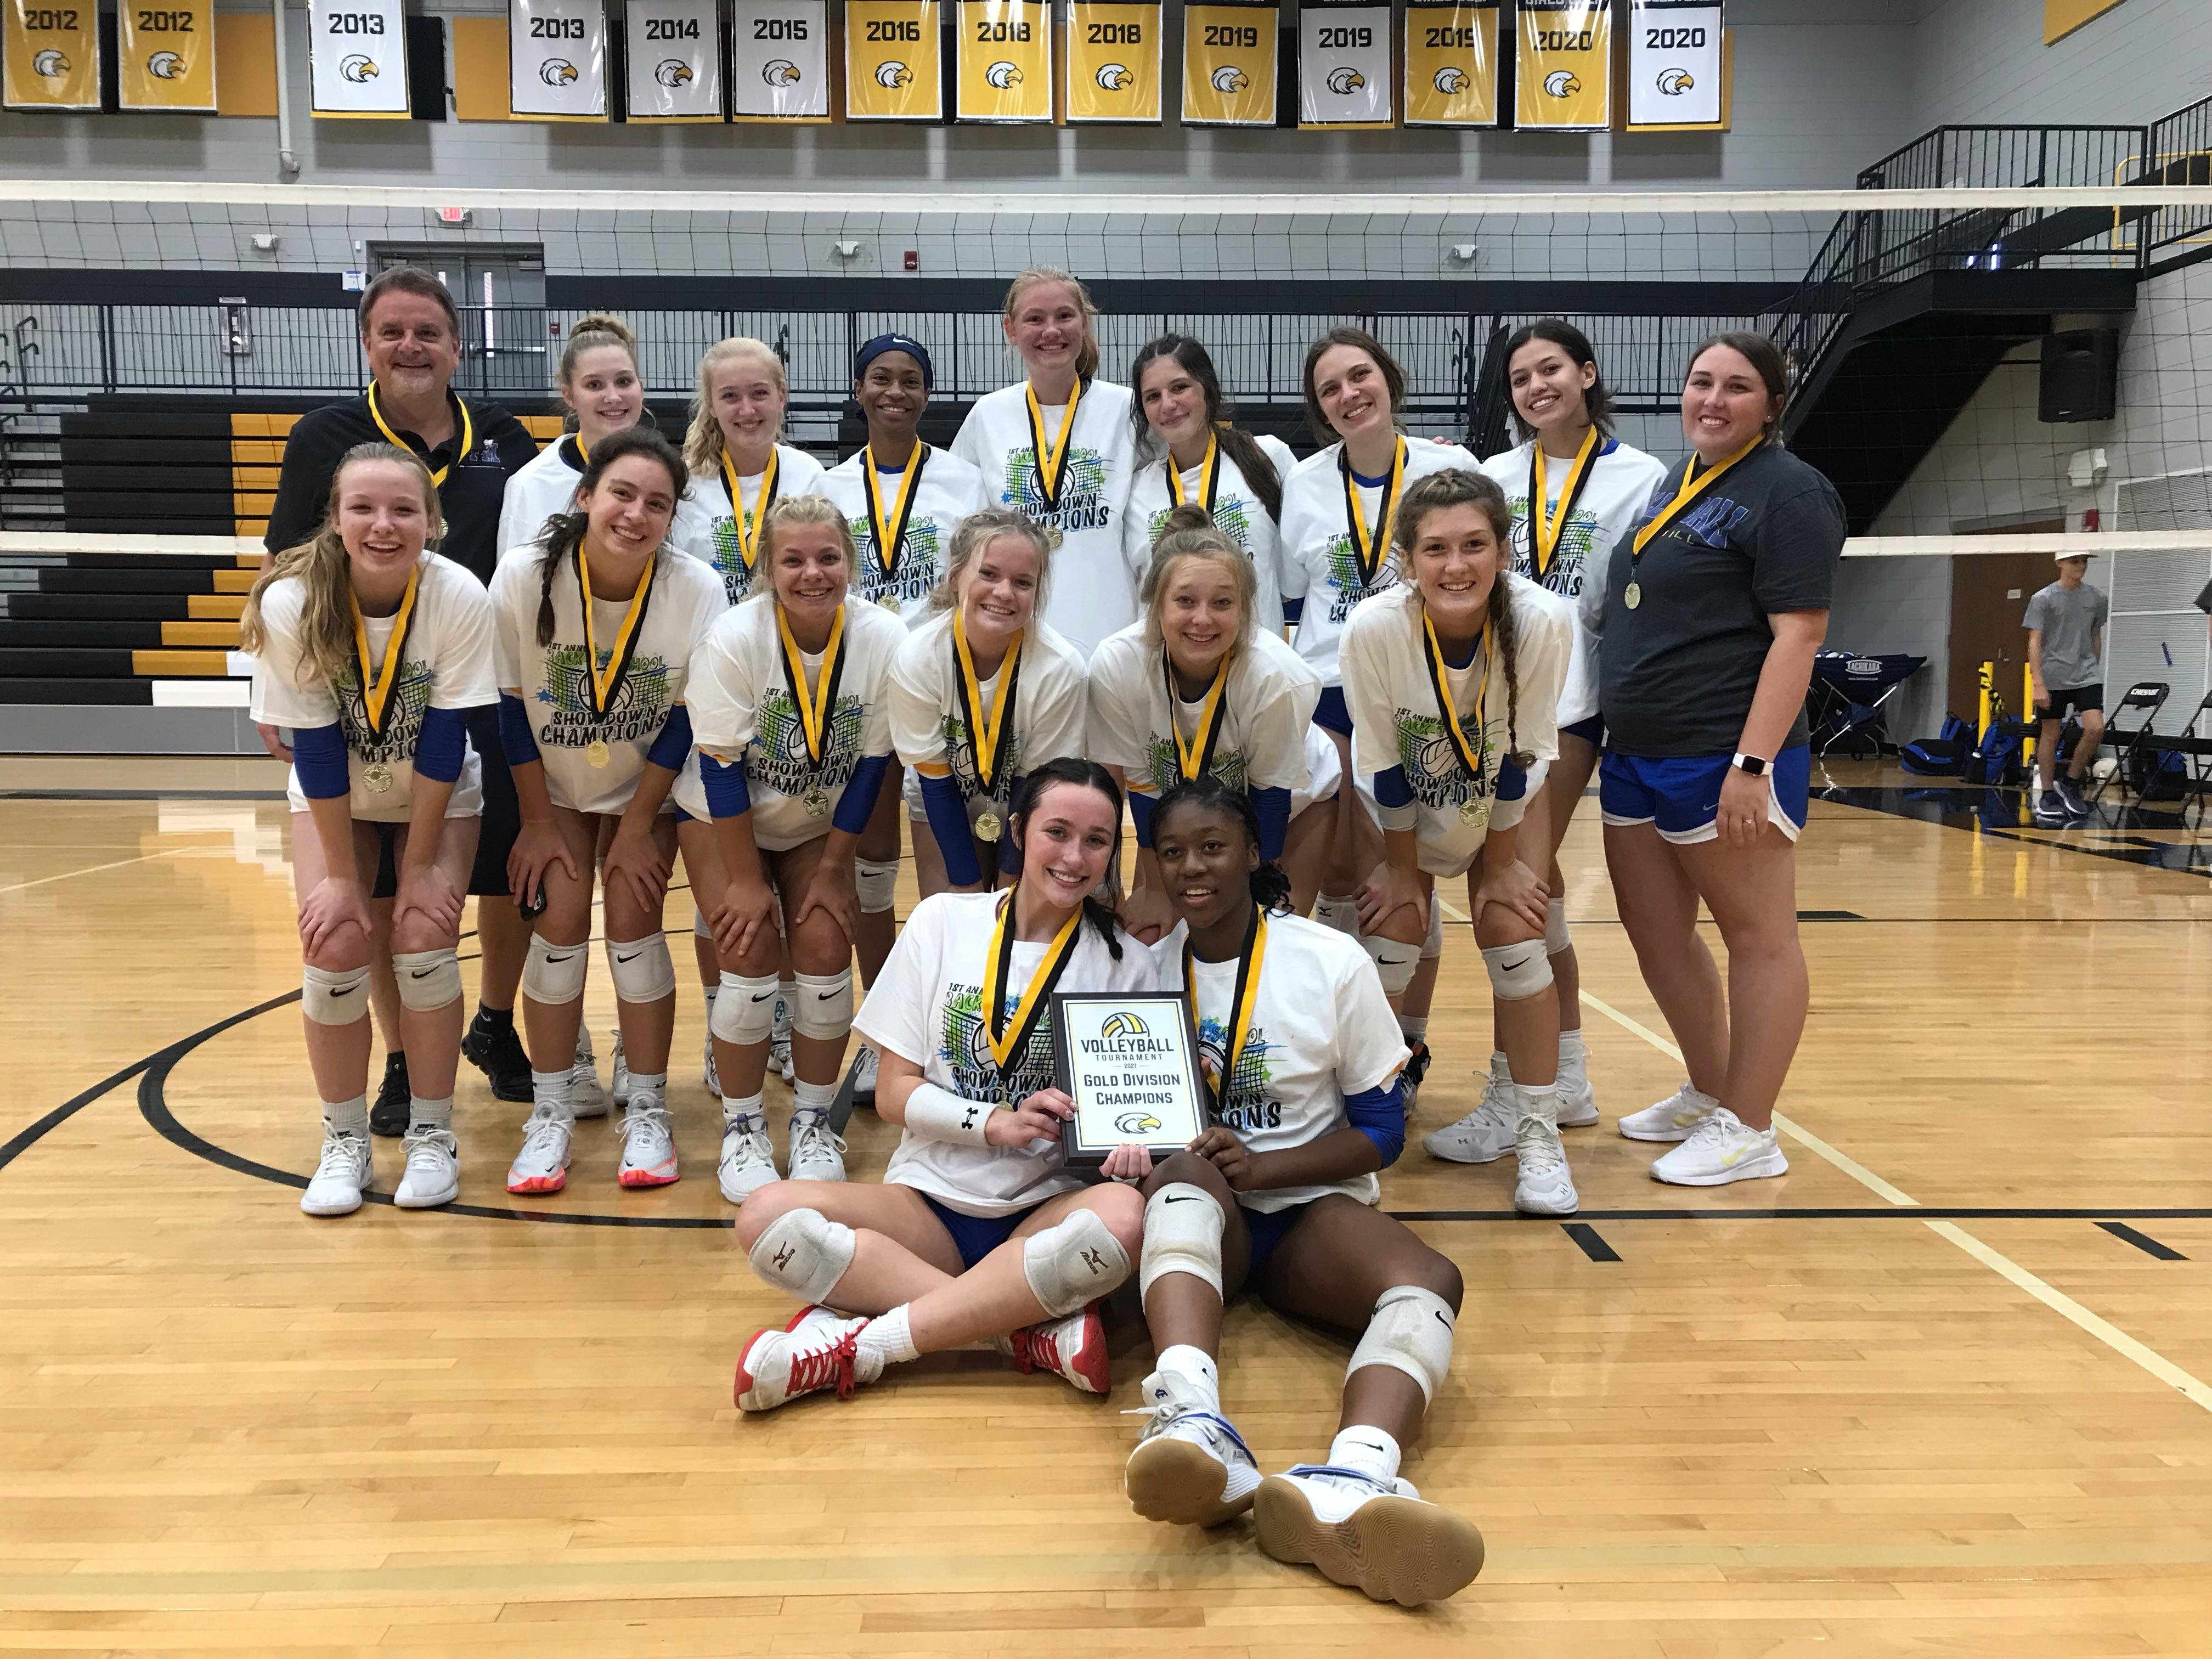 High School Volleyball in Fort Mill SC